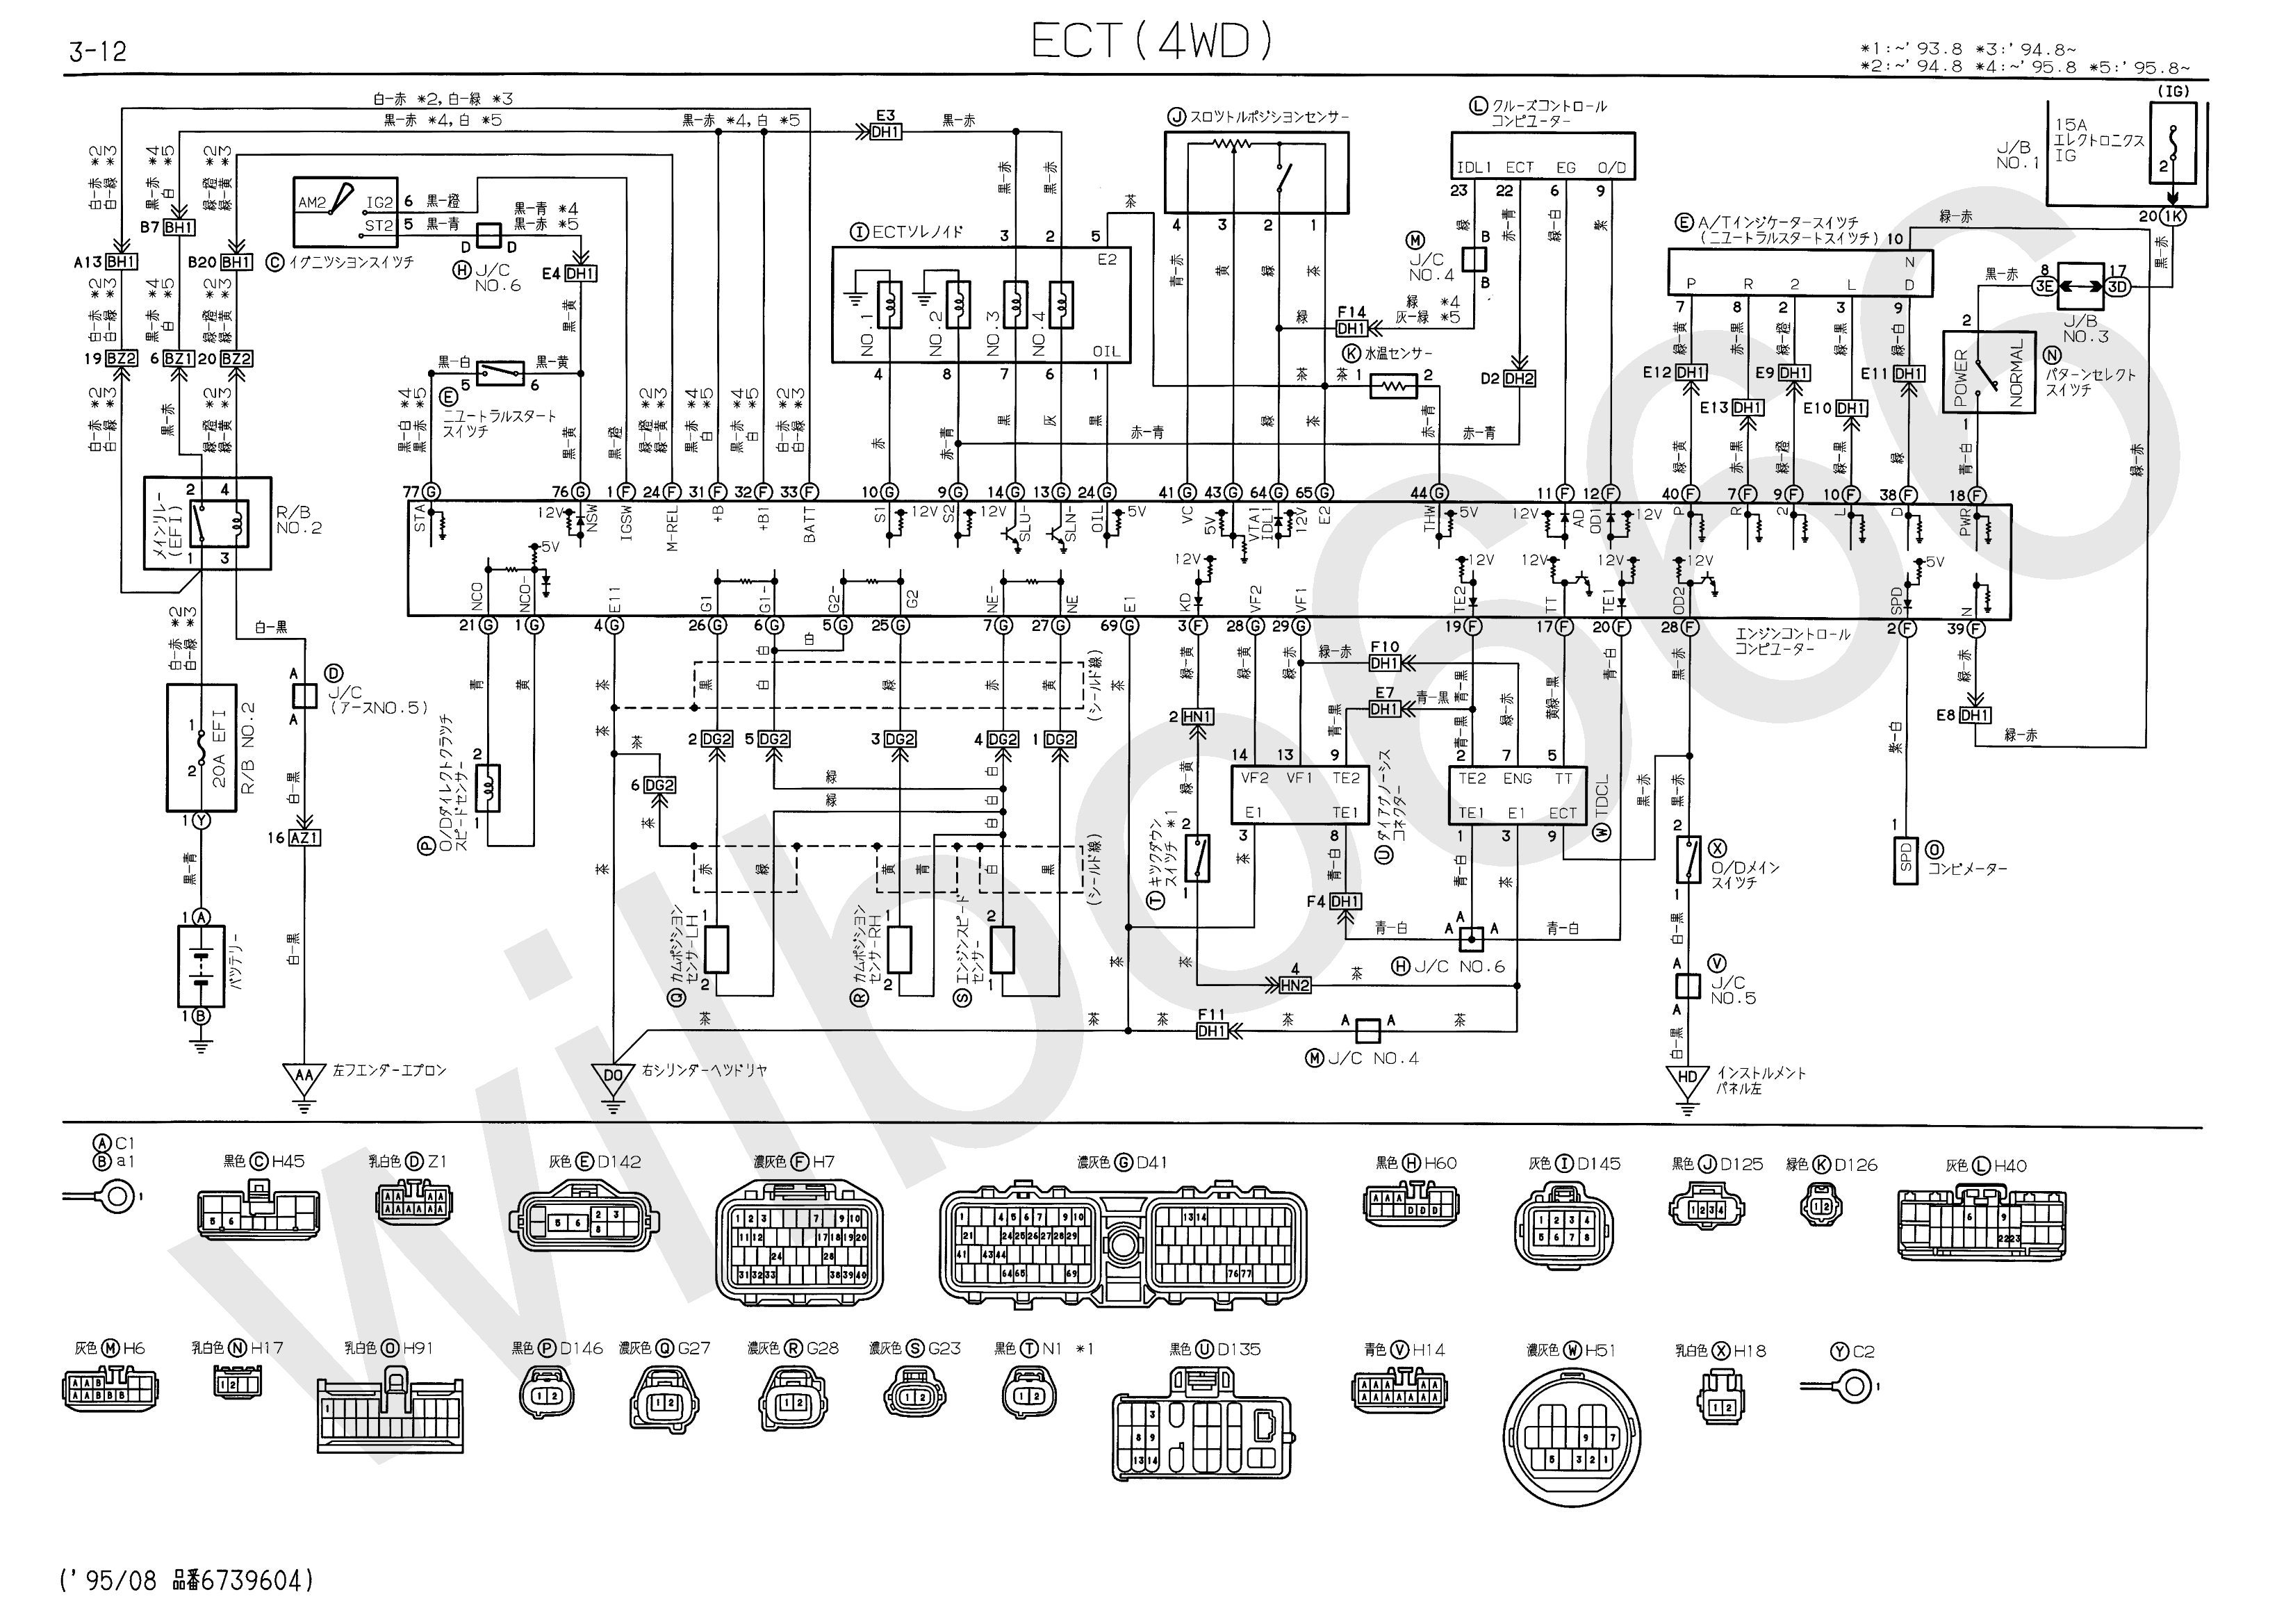 JZS14%23%2C UZS14%23 Electrical Wiring Diagram 6739604 3 12 wilbo666 1uz fe uzs143 aristo engine wiring electrical wiring diagram books at virtualis.co